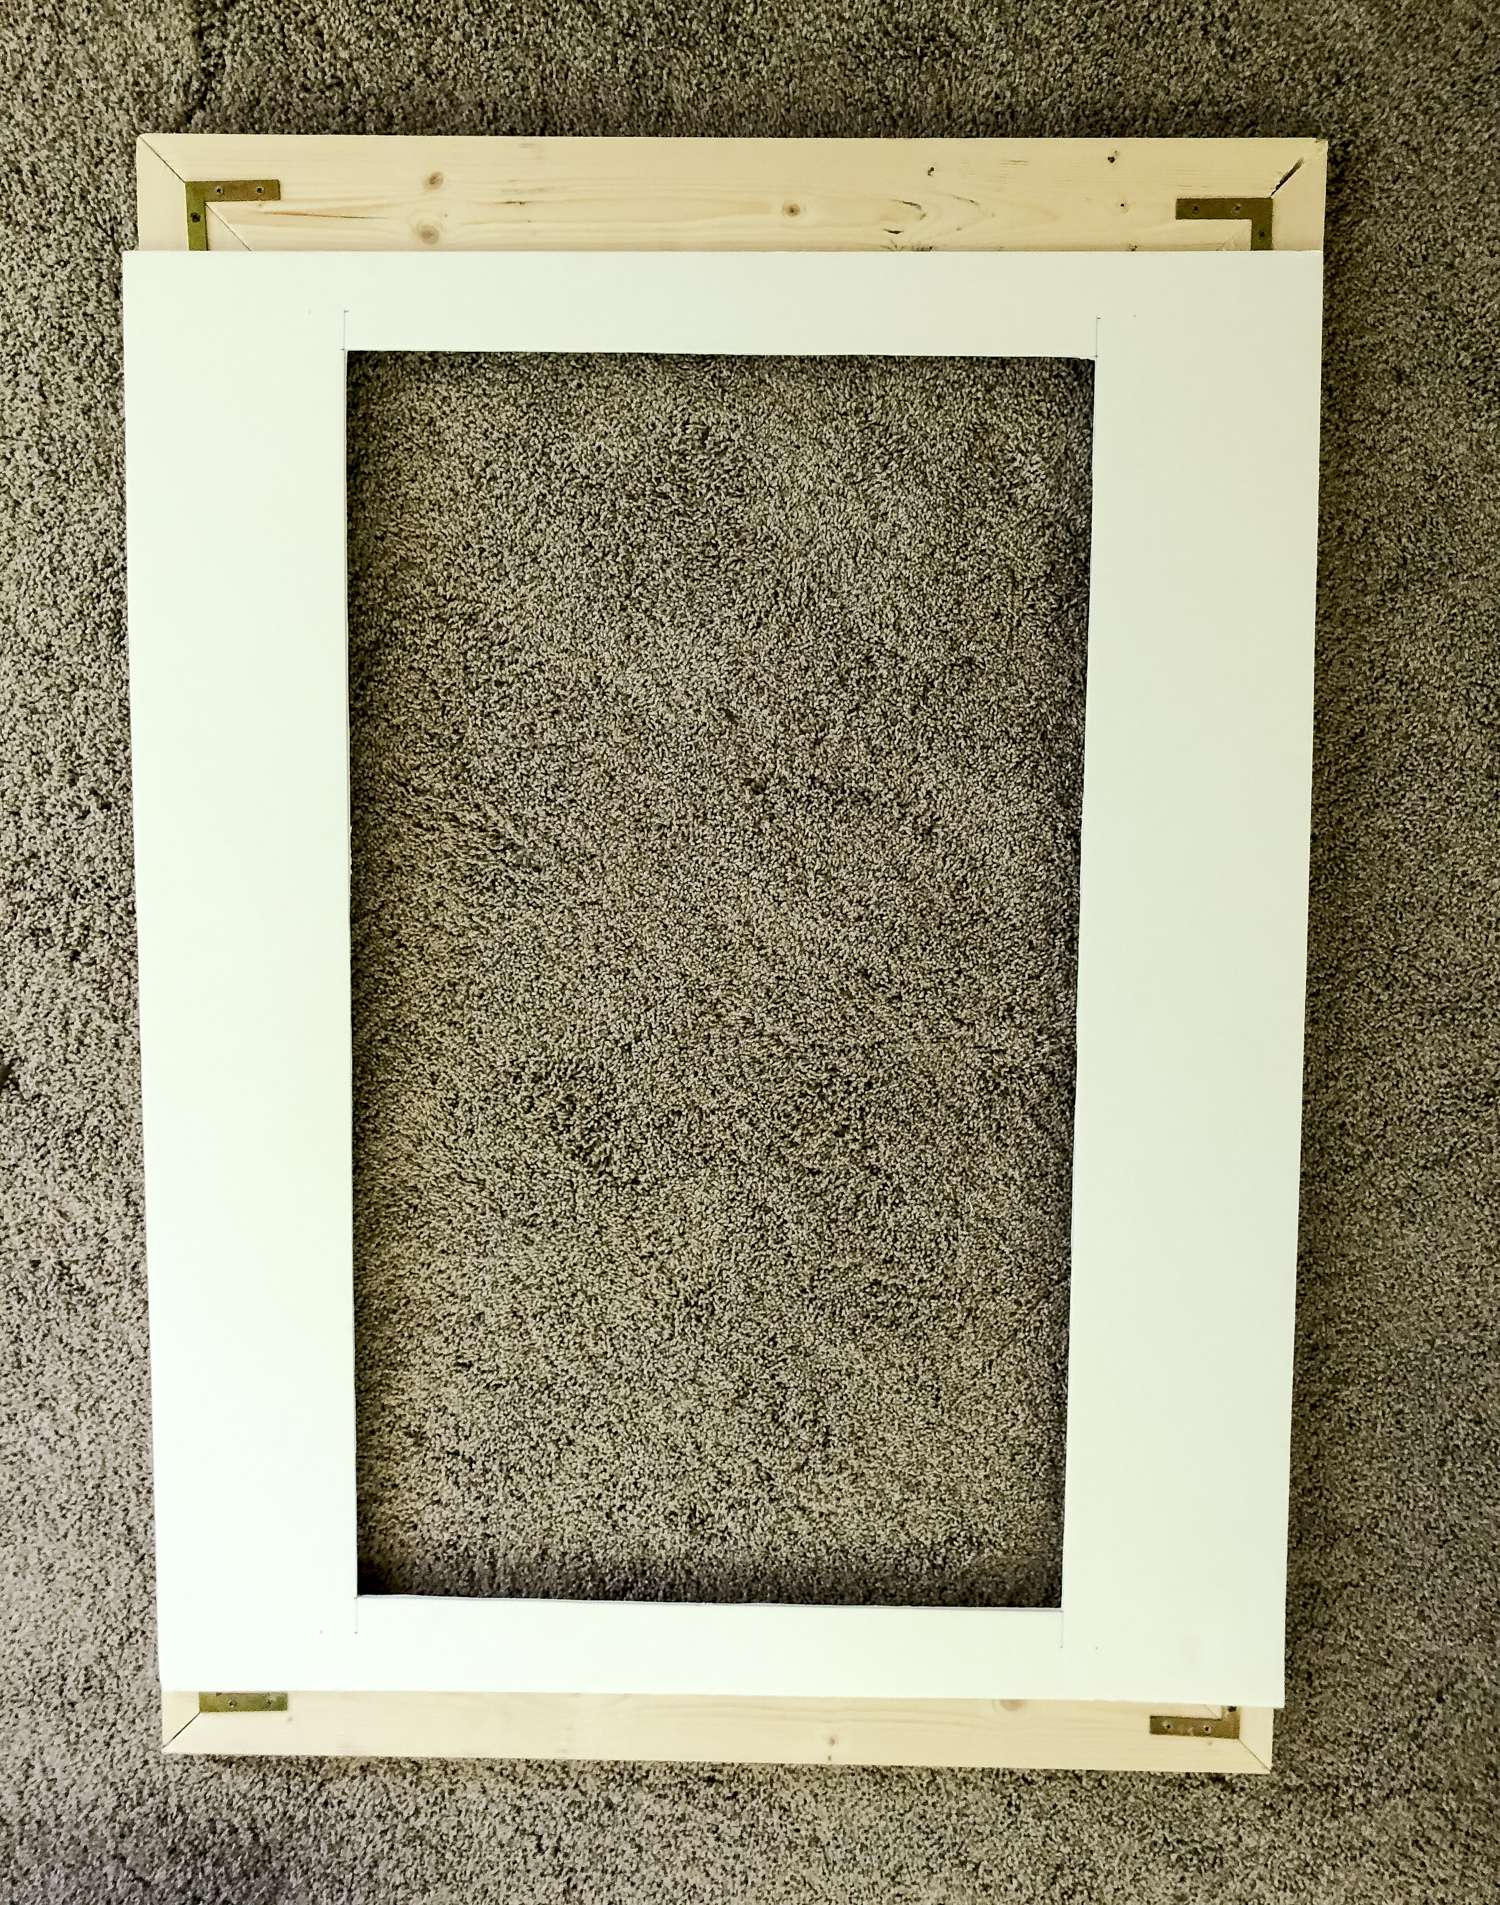 Attach mat level to the DIY frame